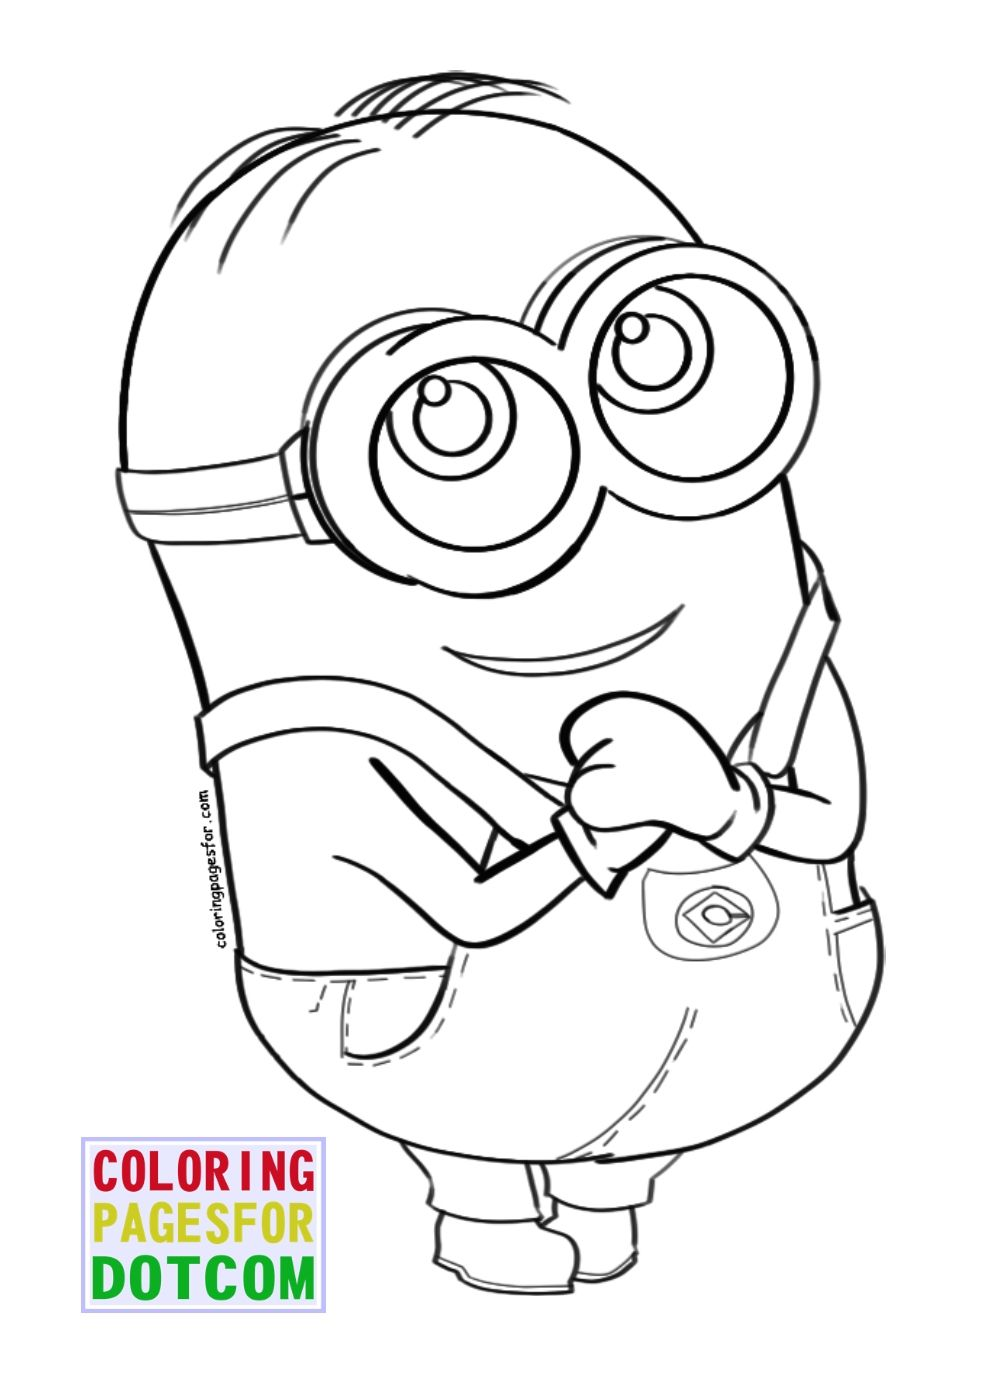 minion printable coloring pages free printable minion coloring pages 06 | minions | Minion  minion printable coloring pages